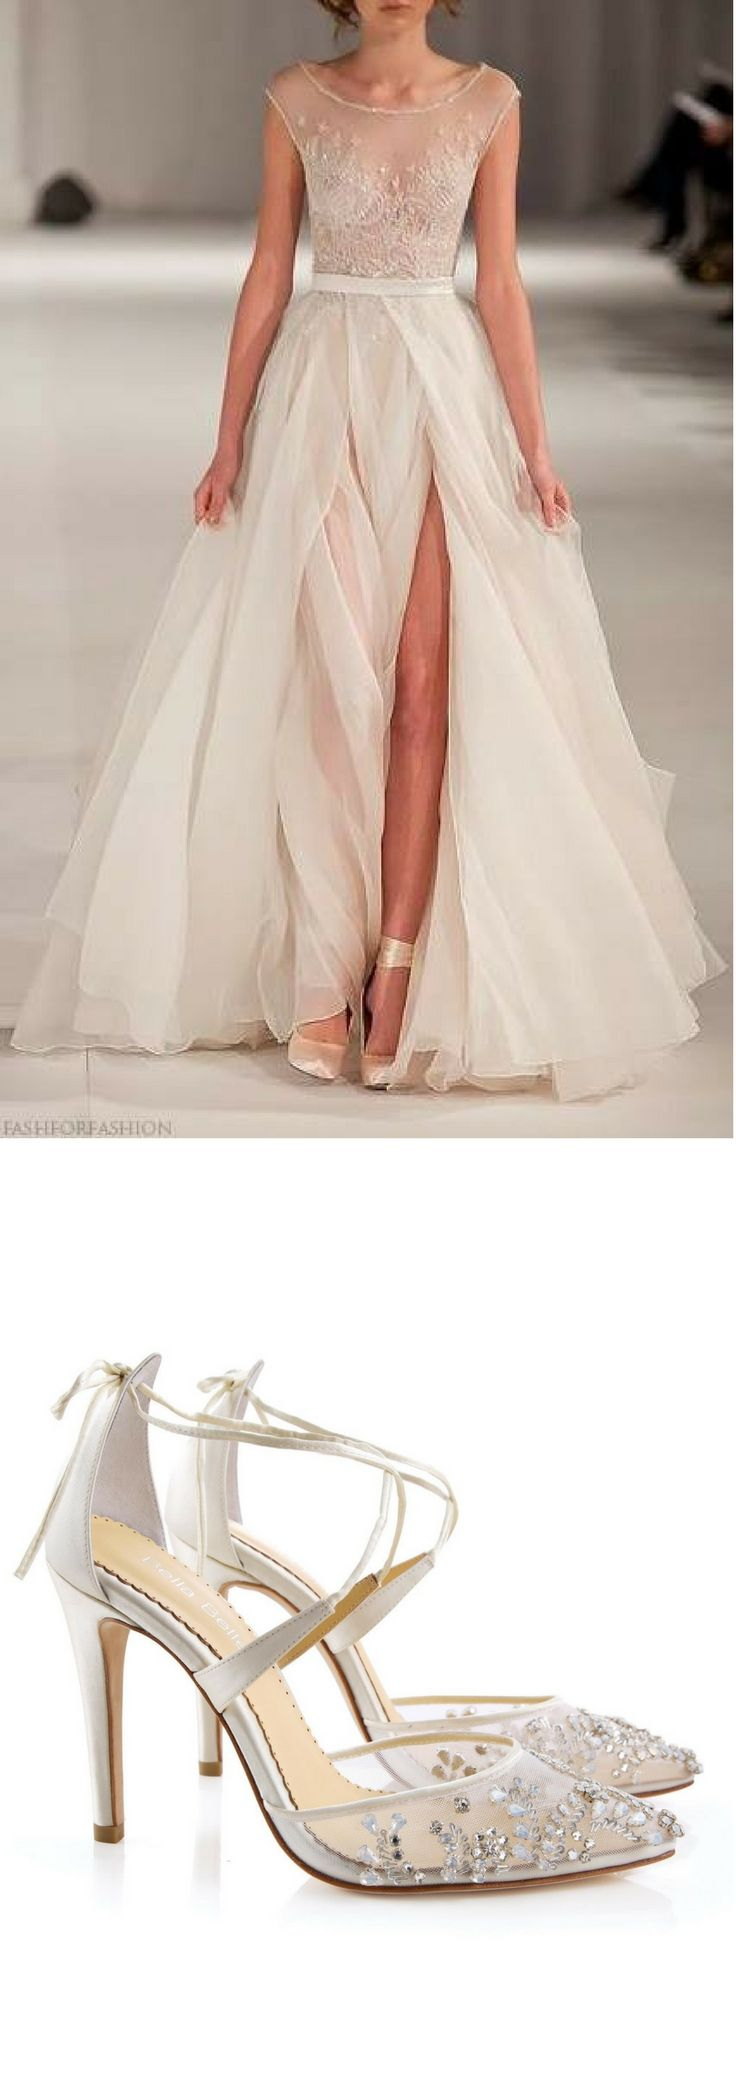 "- Florence - 'Enchanted' bridal collection - Hand beaded with milky teardrop stones and beads - Cross ankle straps - Lovely tied bow at heel cups - Intricate and luxurious - Ivory - 3 3/4"" inch heels"